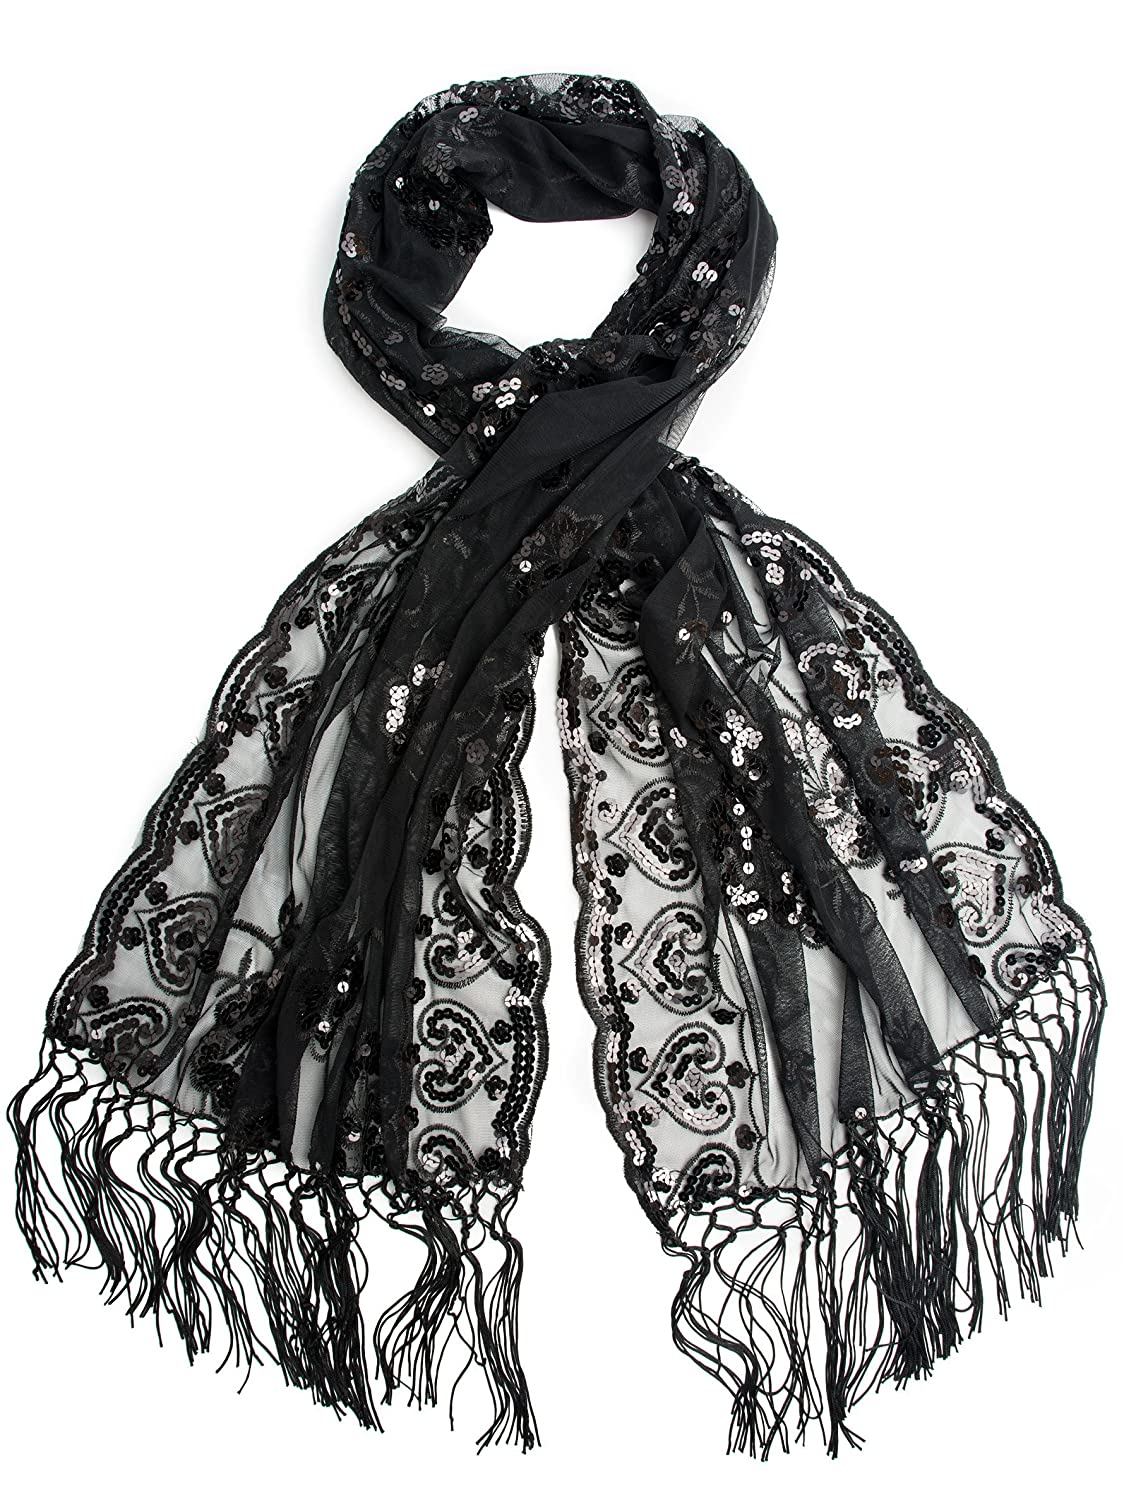 1920s Style Shawls, Wraps, Scarves Black Madison Shawl Long Fringe Sequin Evening Wrap $14.95 AT vintagedancer.com